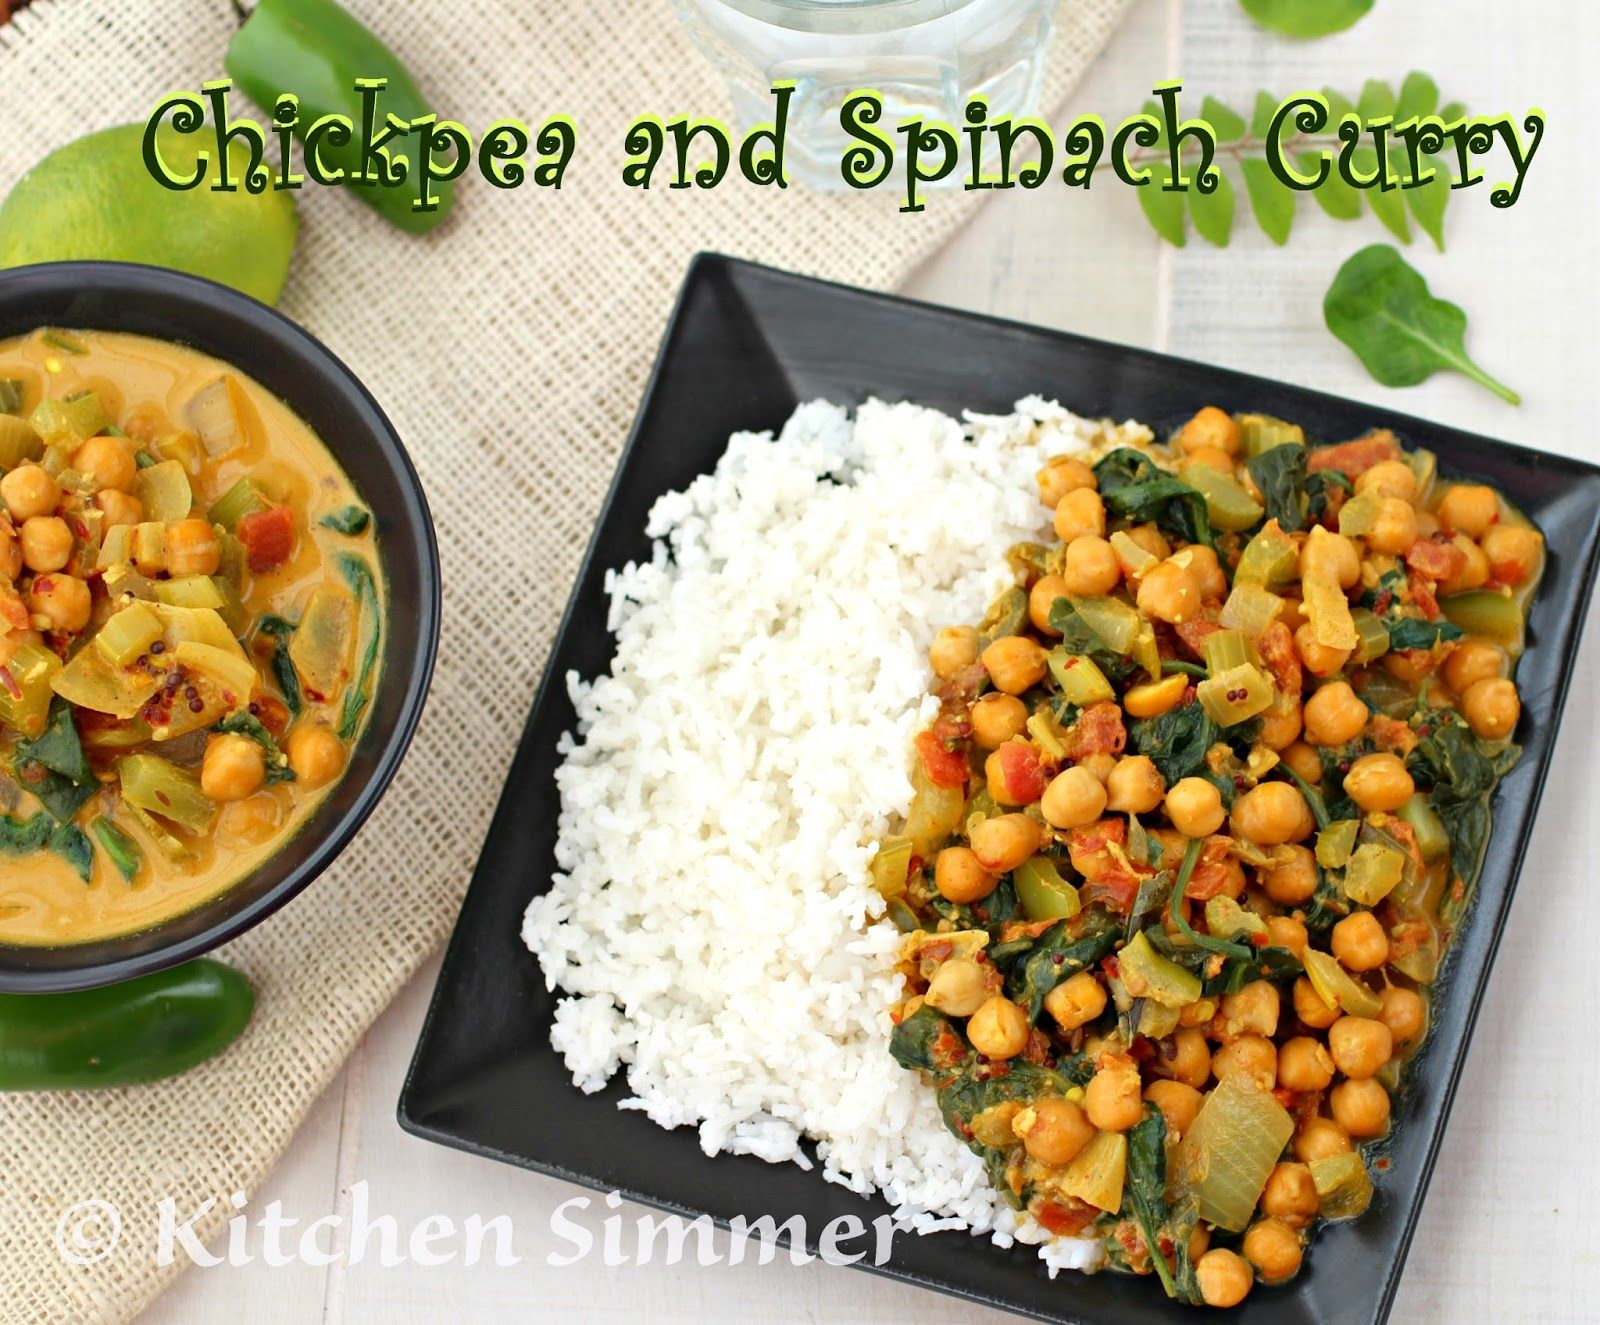 Kitchen Simmer: Vegan Chickpea and Spinach Curry